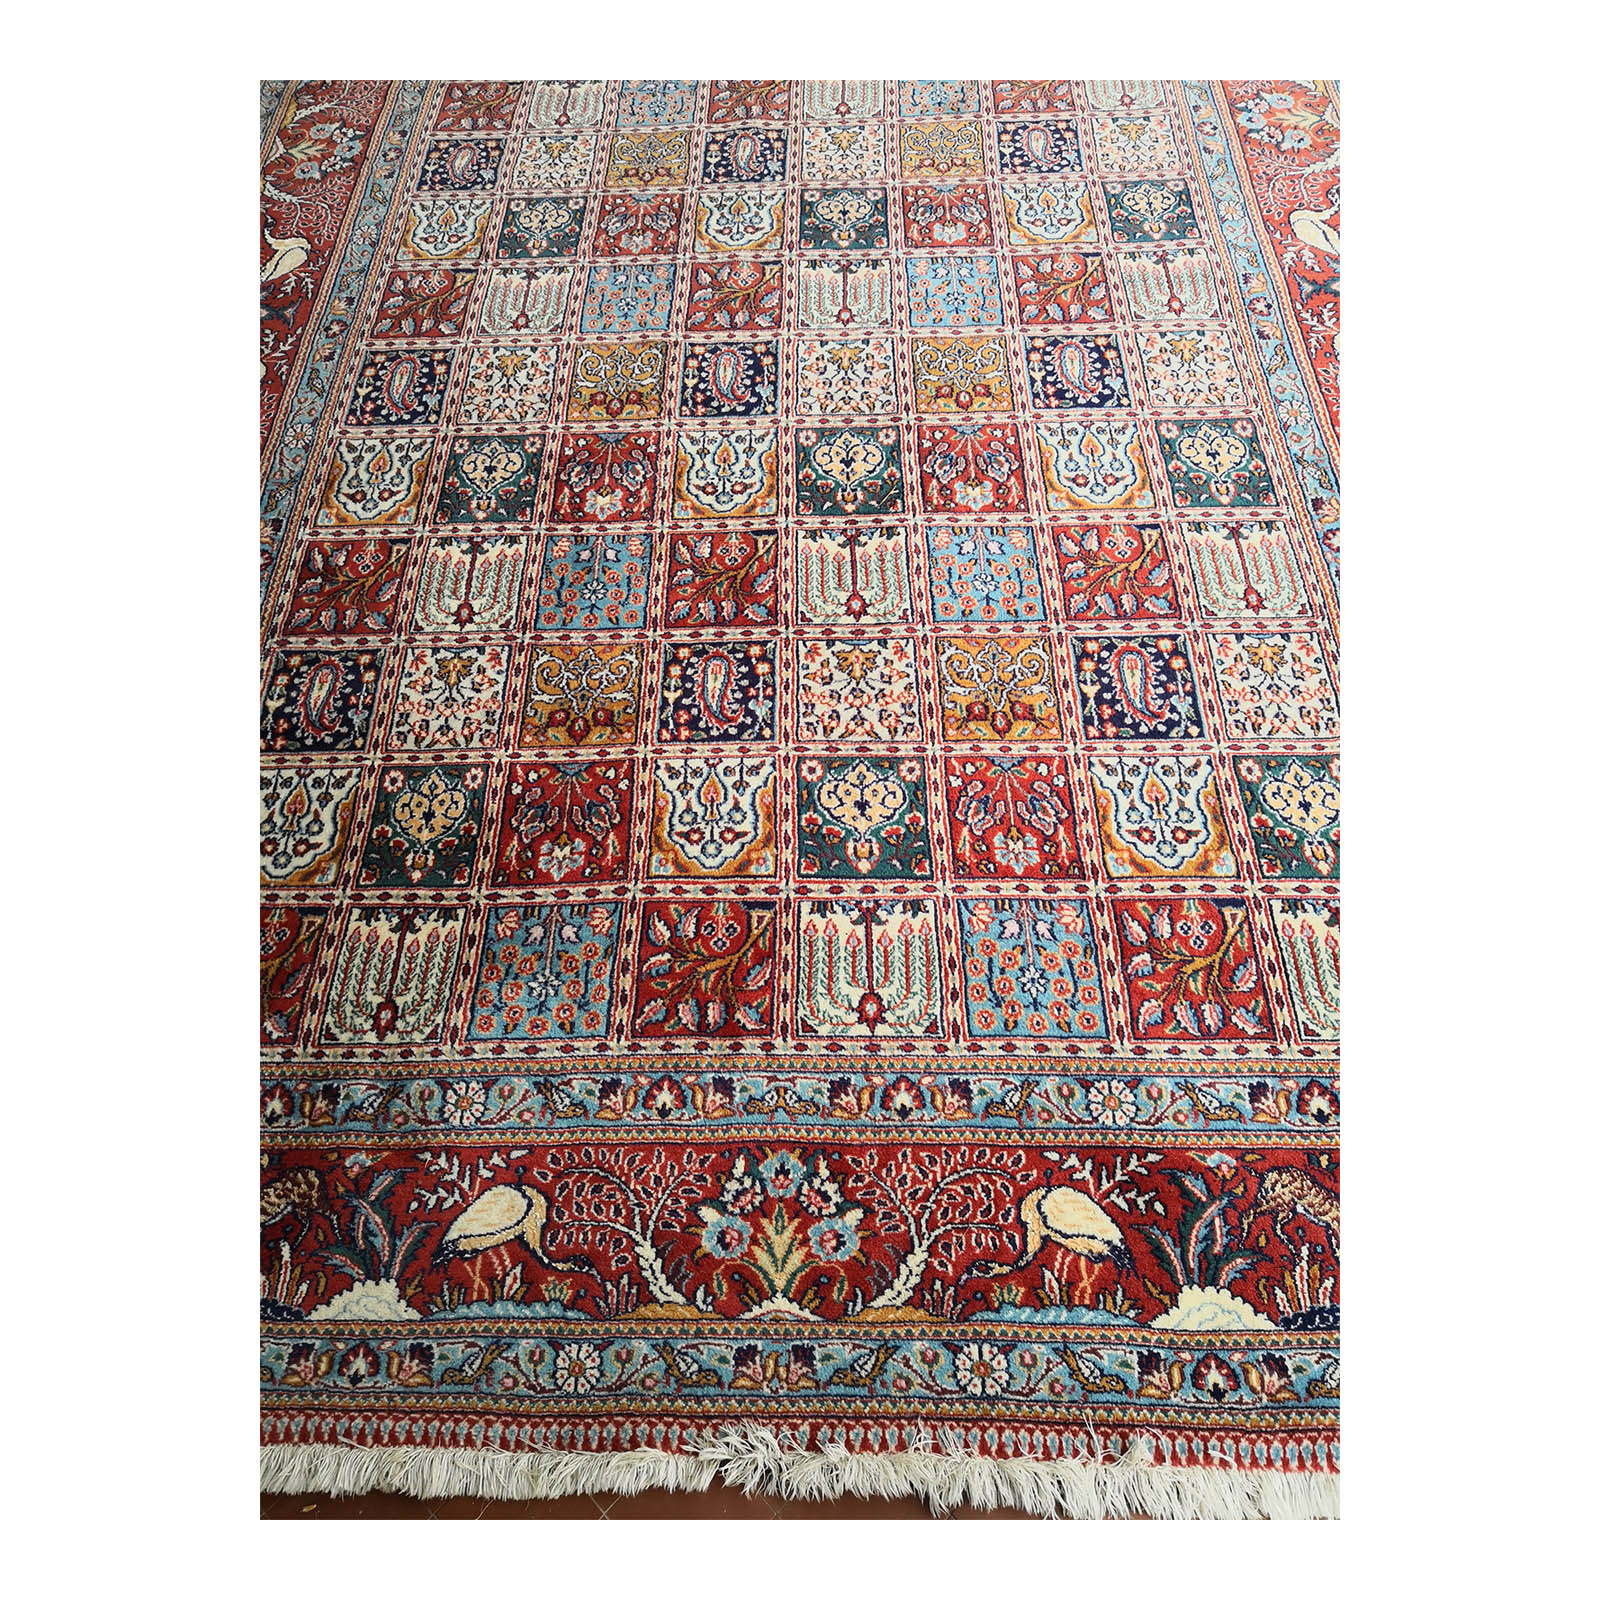 Two Design Lovers Iranian Khesti rug end